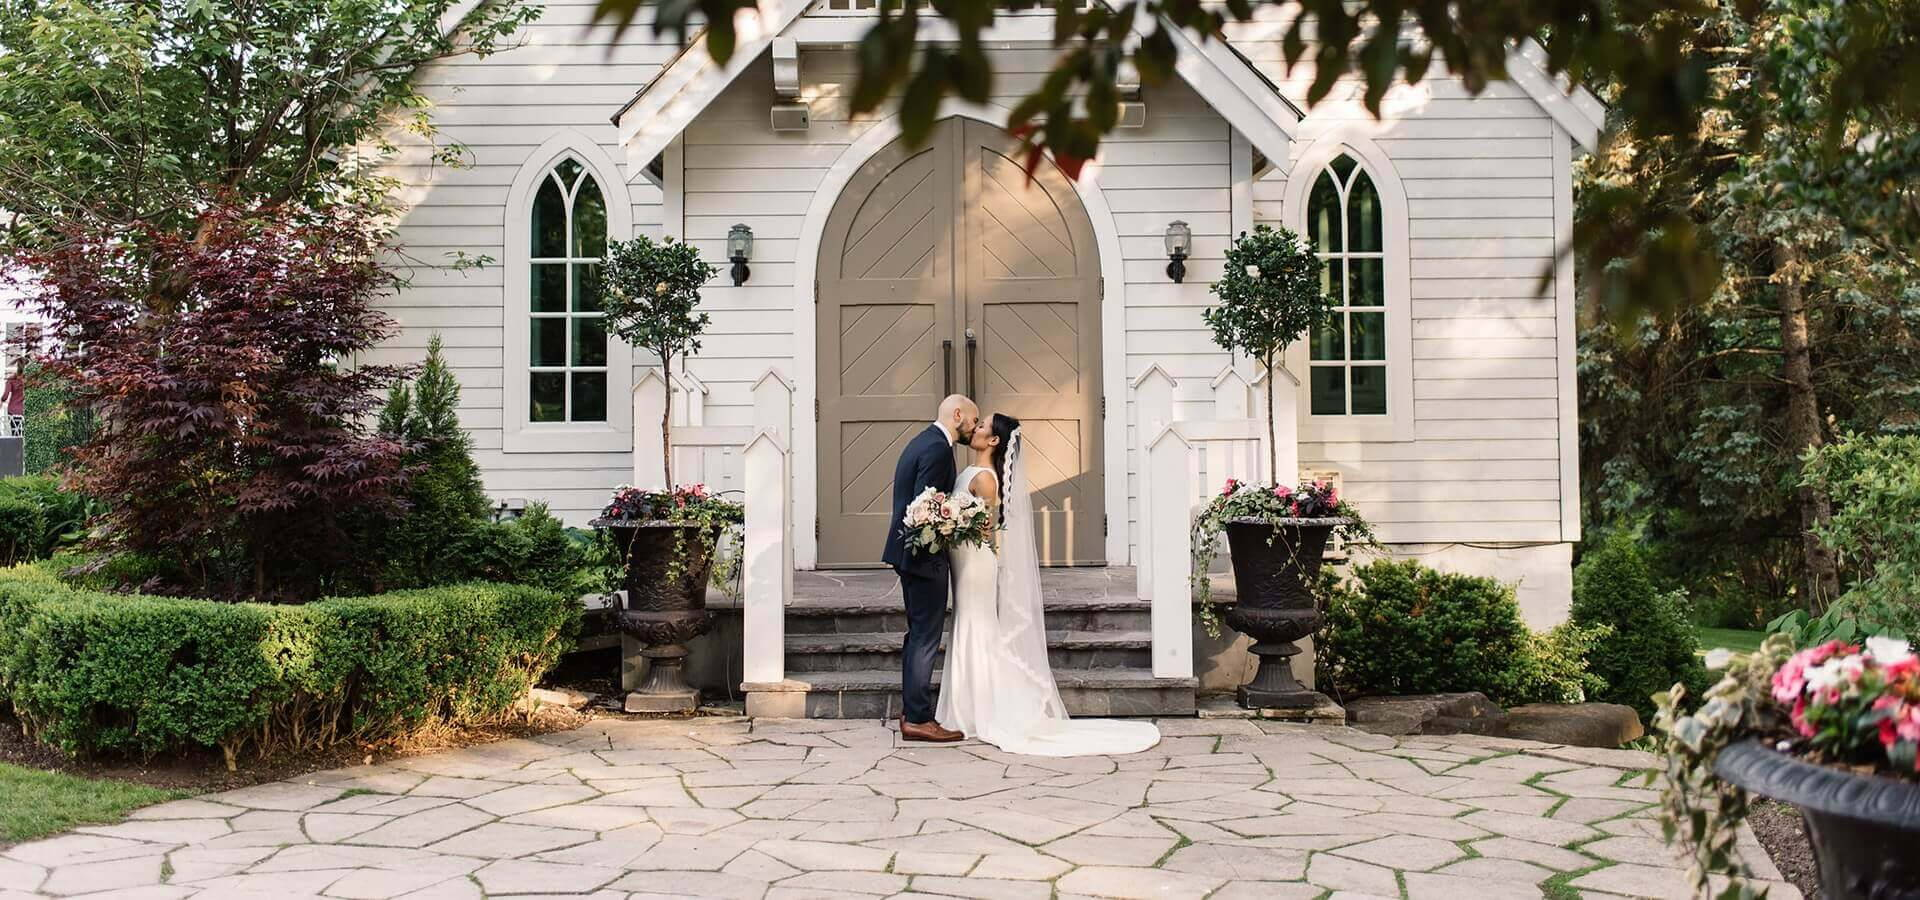 Hero image for Megan and Aaron's Boho Chic Wedding at The Doctor's House